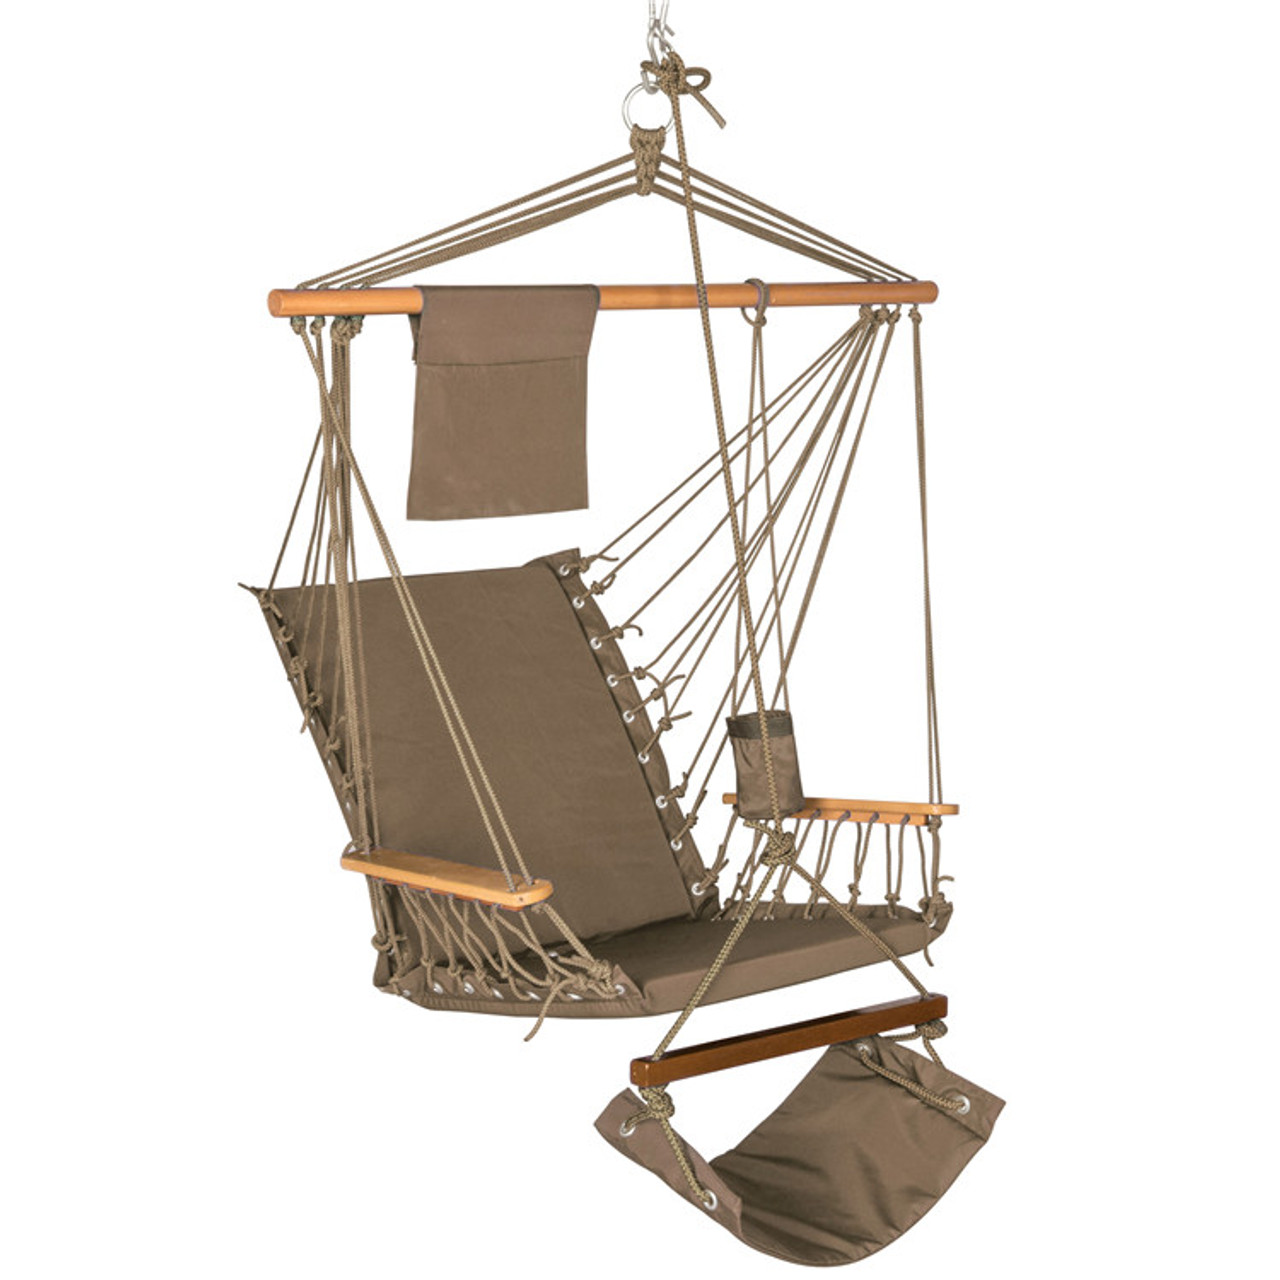 net your rope outdoor patio where you ttw trendy home hang for cotton large dp the hammock is comfortable hanging with this and into garden relaxation porch seat swing everking chair indoor